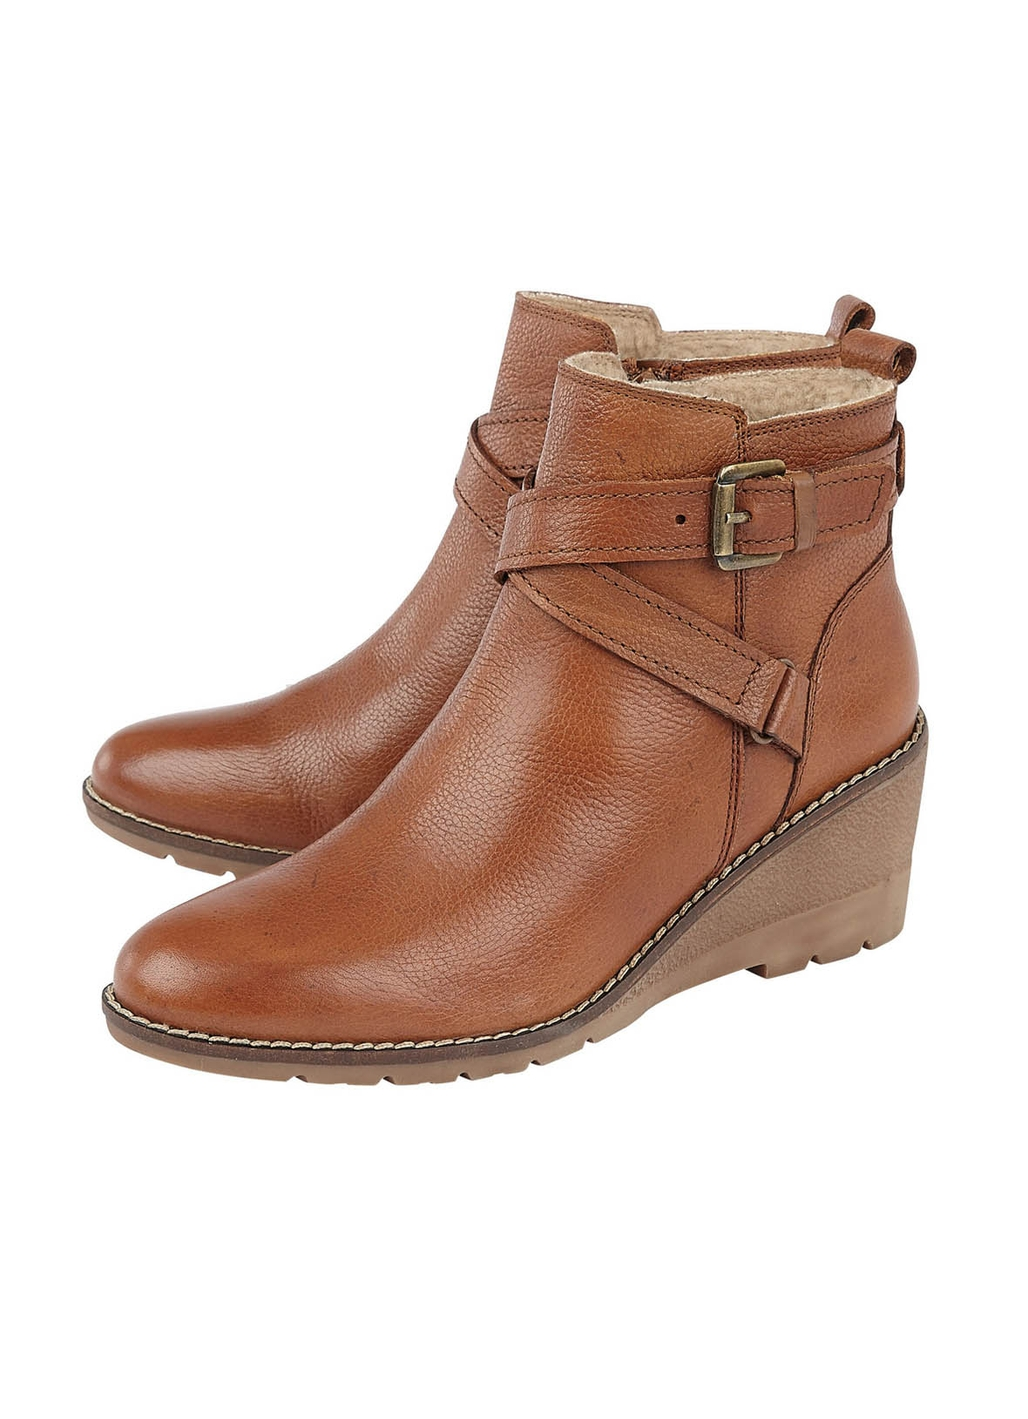 Lotus Petra Leather Ankle Boot in Tan